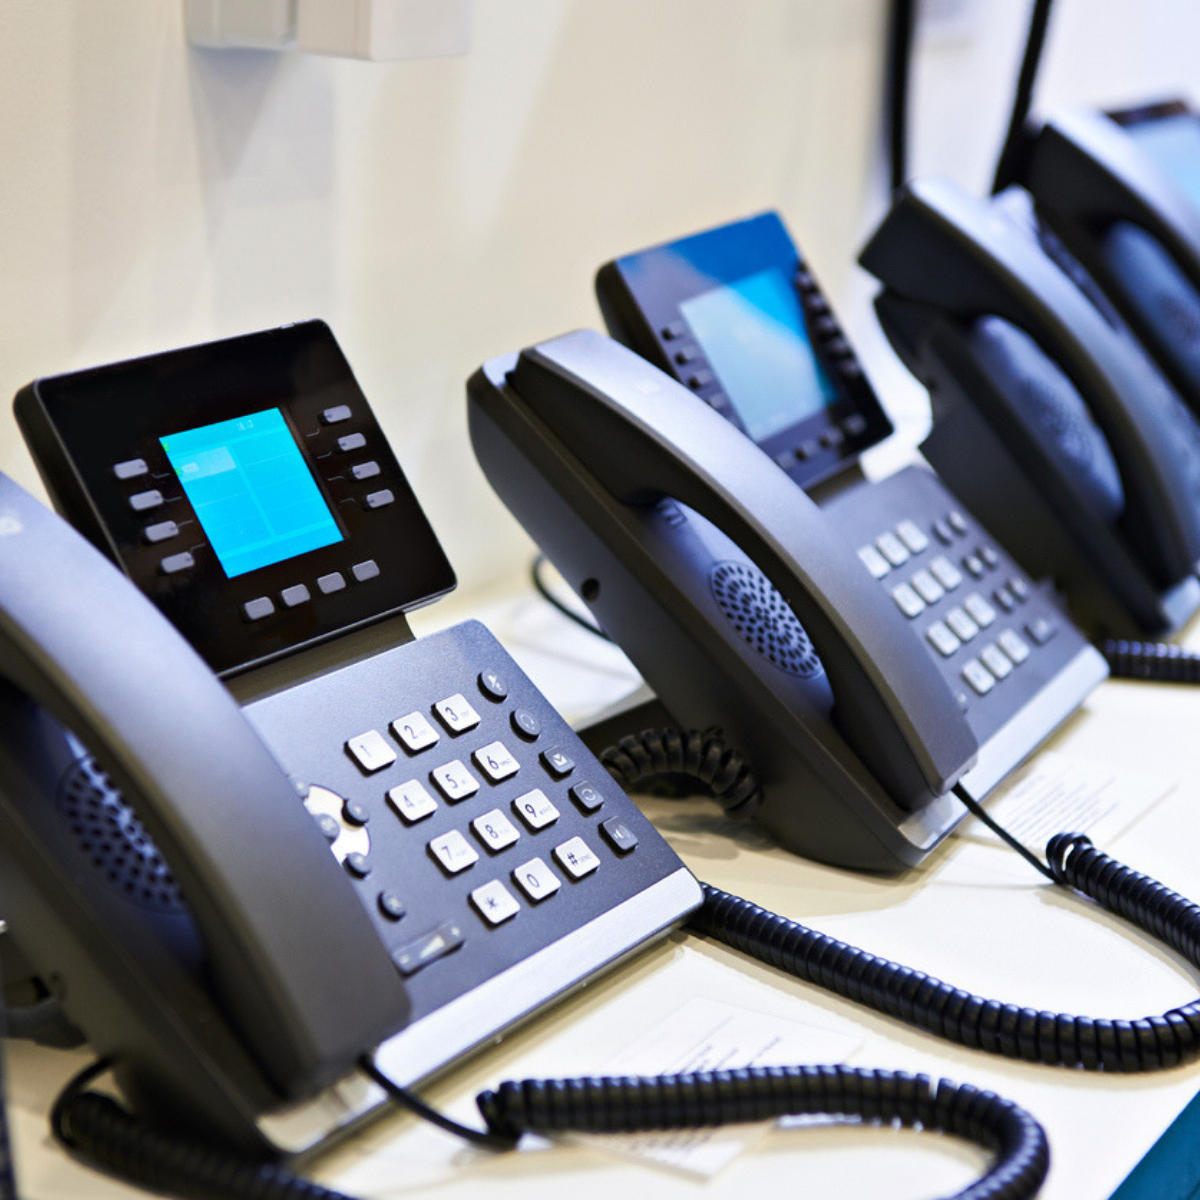 Top 5 Reasons to Choose a Phonesuite VoIP System over Mitel